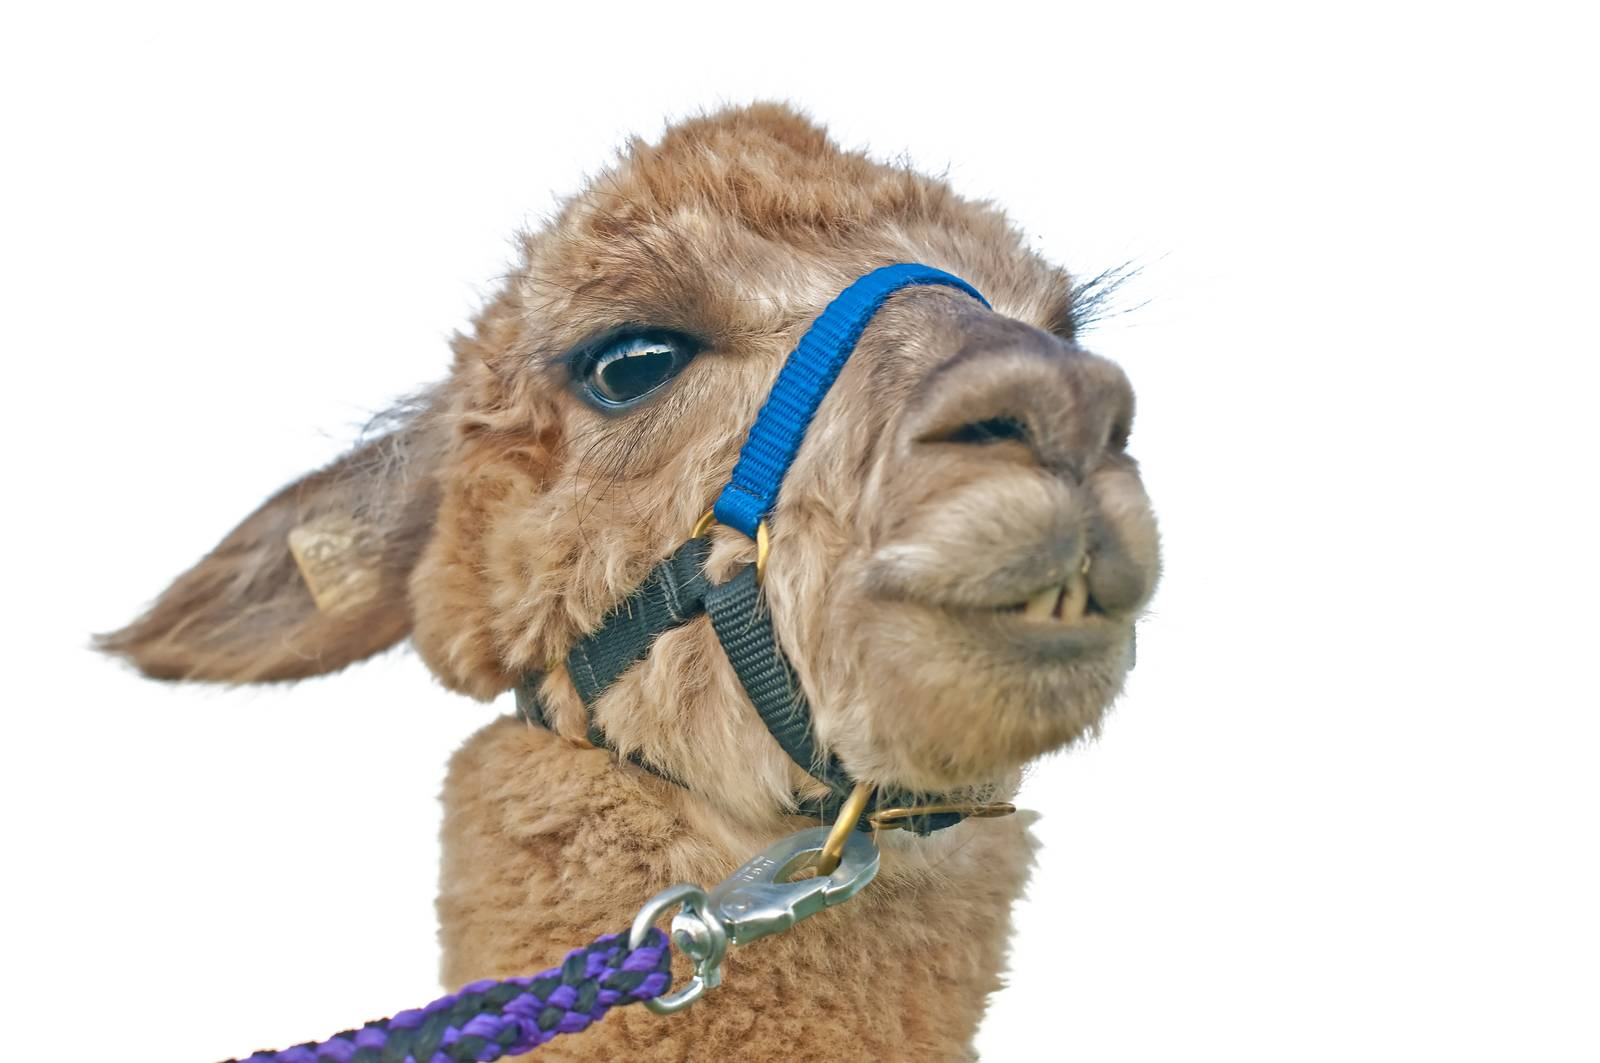 AAT, assisted animal therapy, adorable, alpaca, America, Andes - D34298254